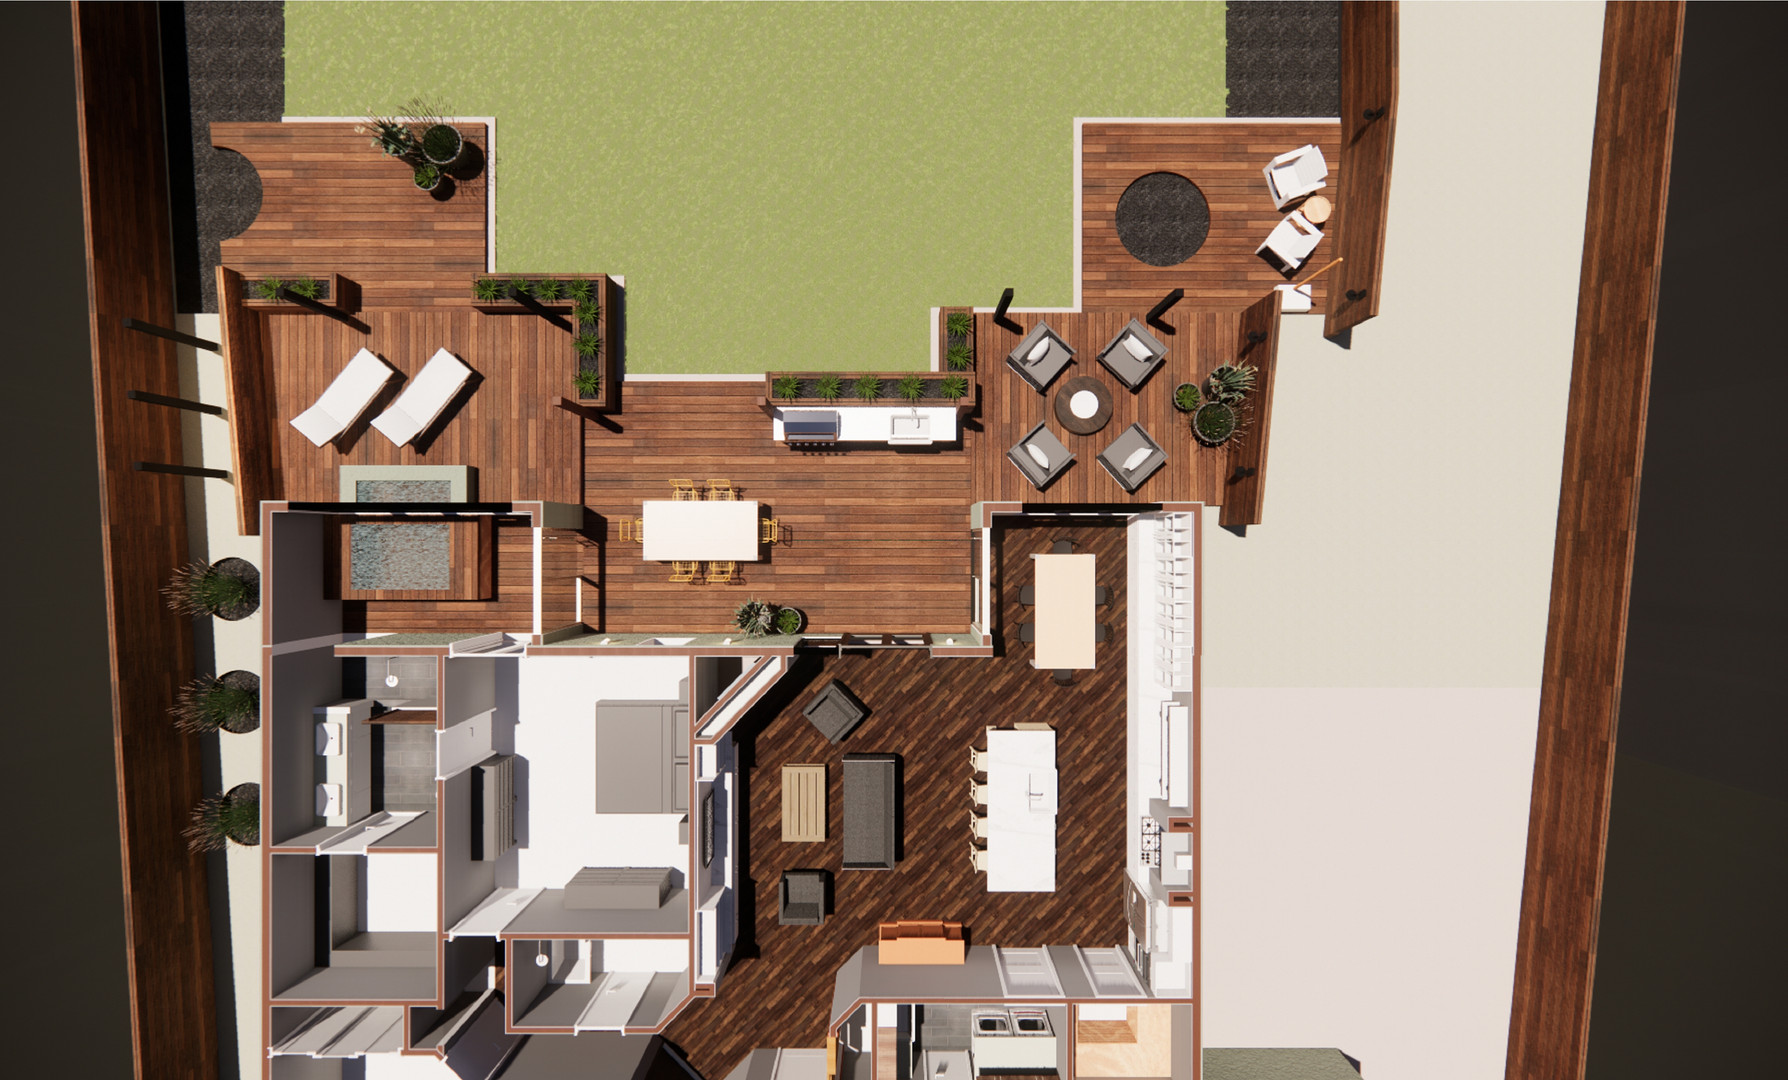 SHASTA LAKE REMODEL - 3D FLOOR PLAN